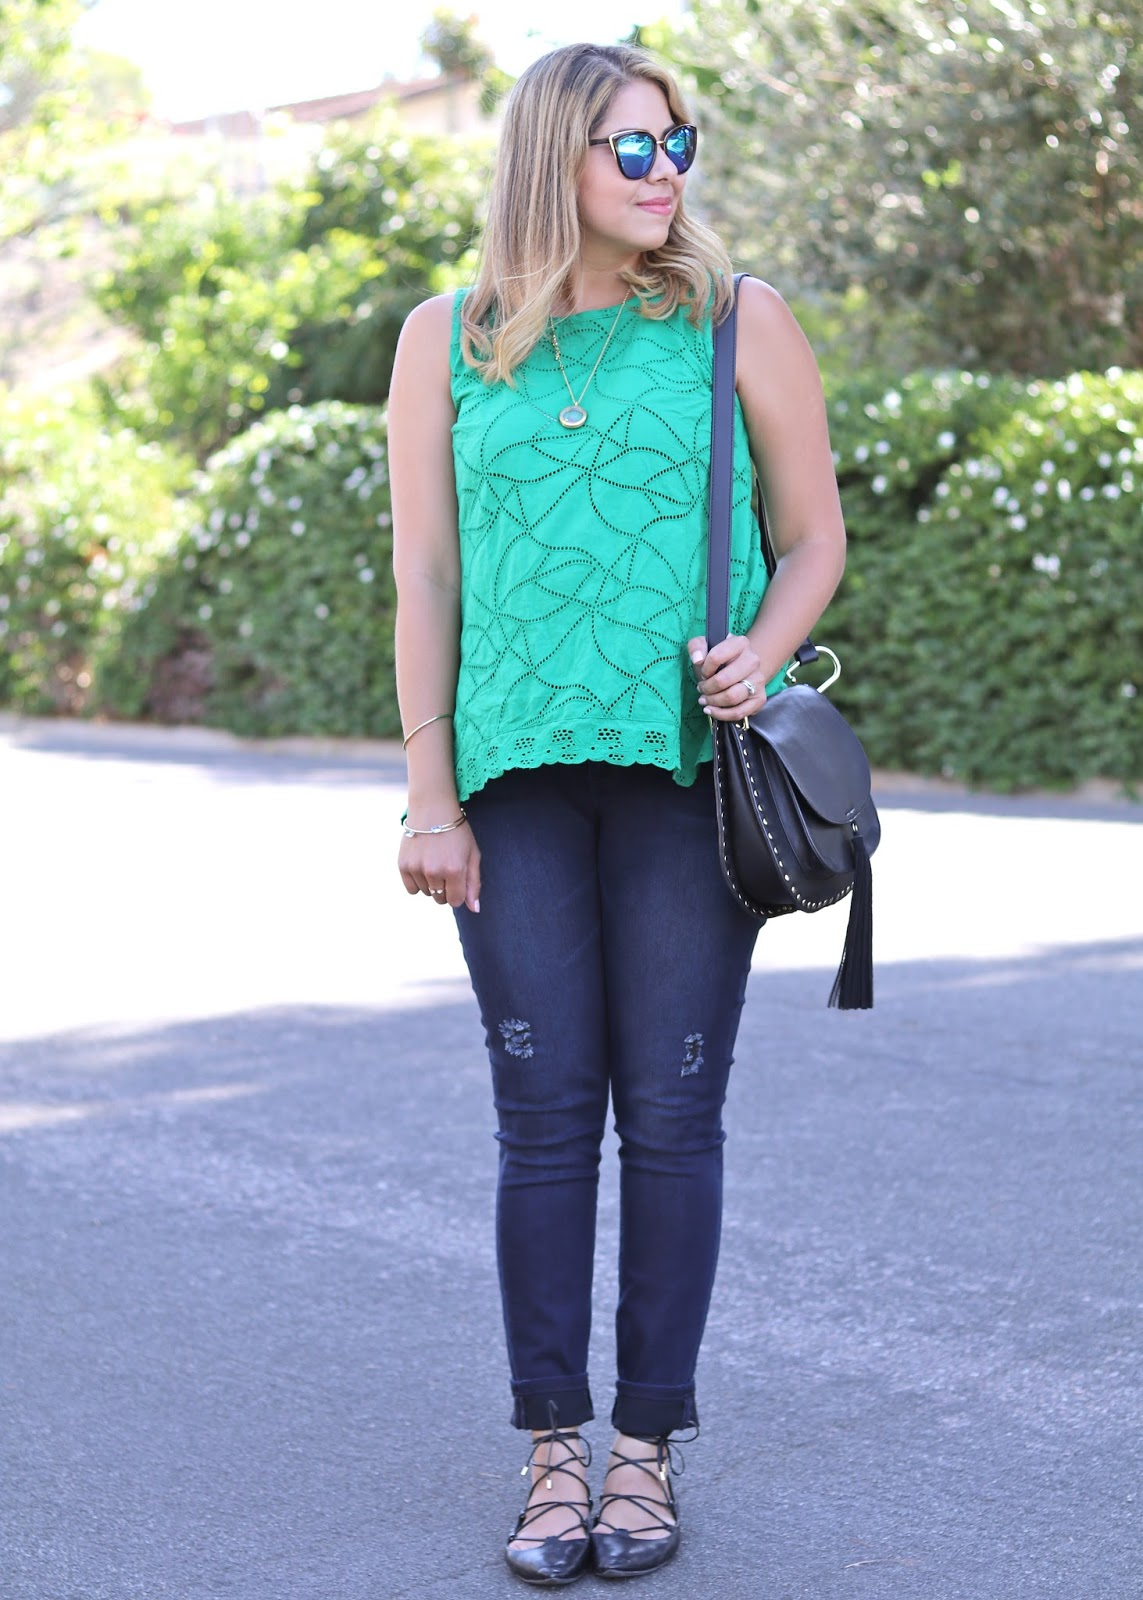 Summer Outfit 2016, green and blue outfit, socal fashion blogger, cutely accessorized summer outfit